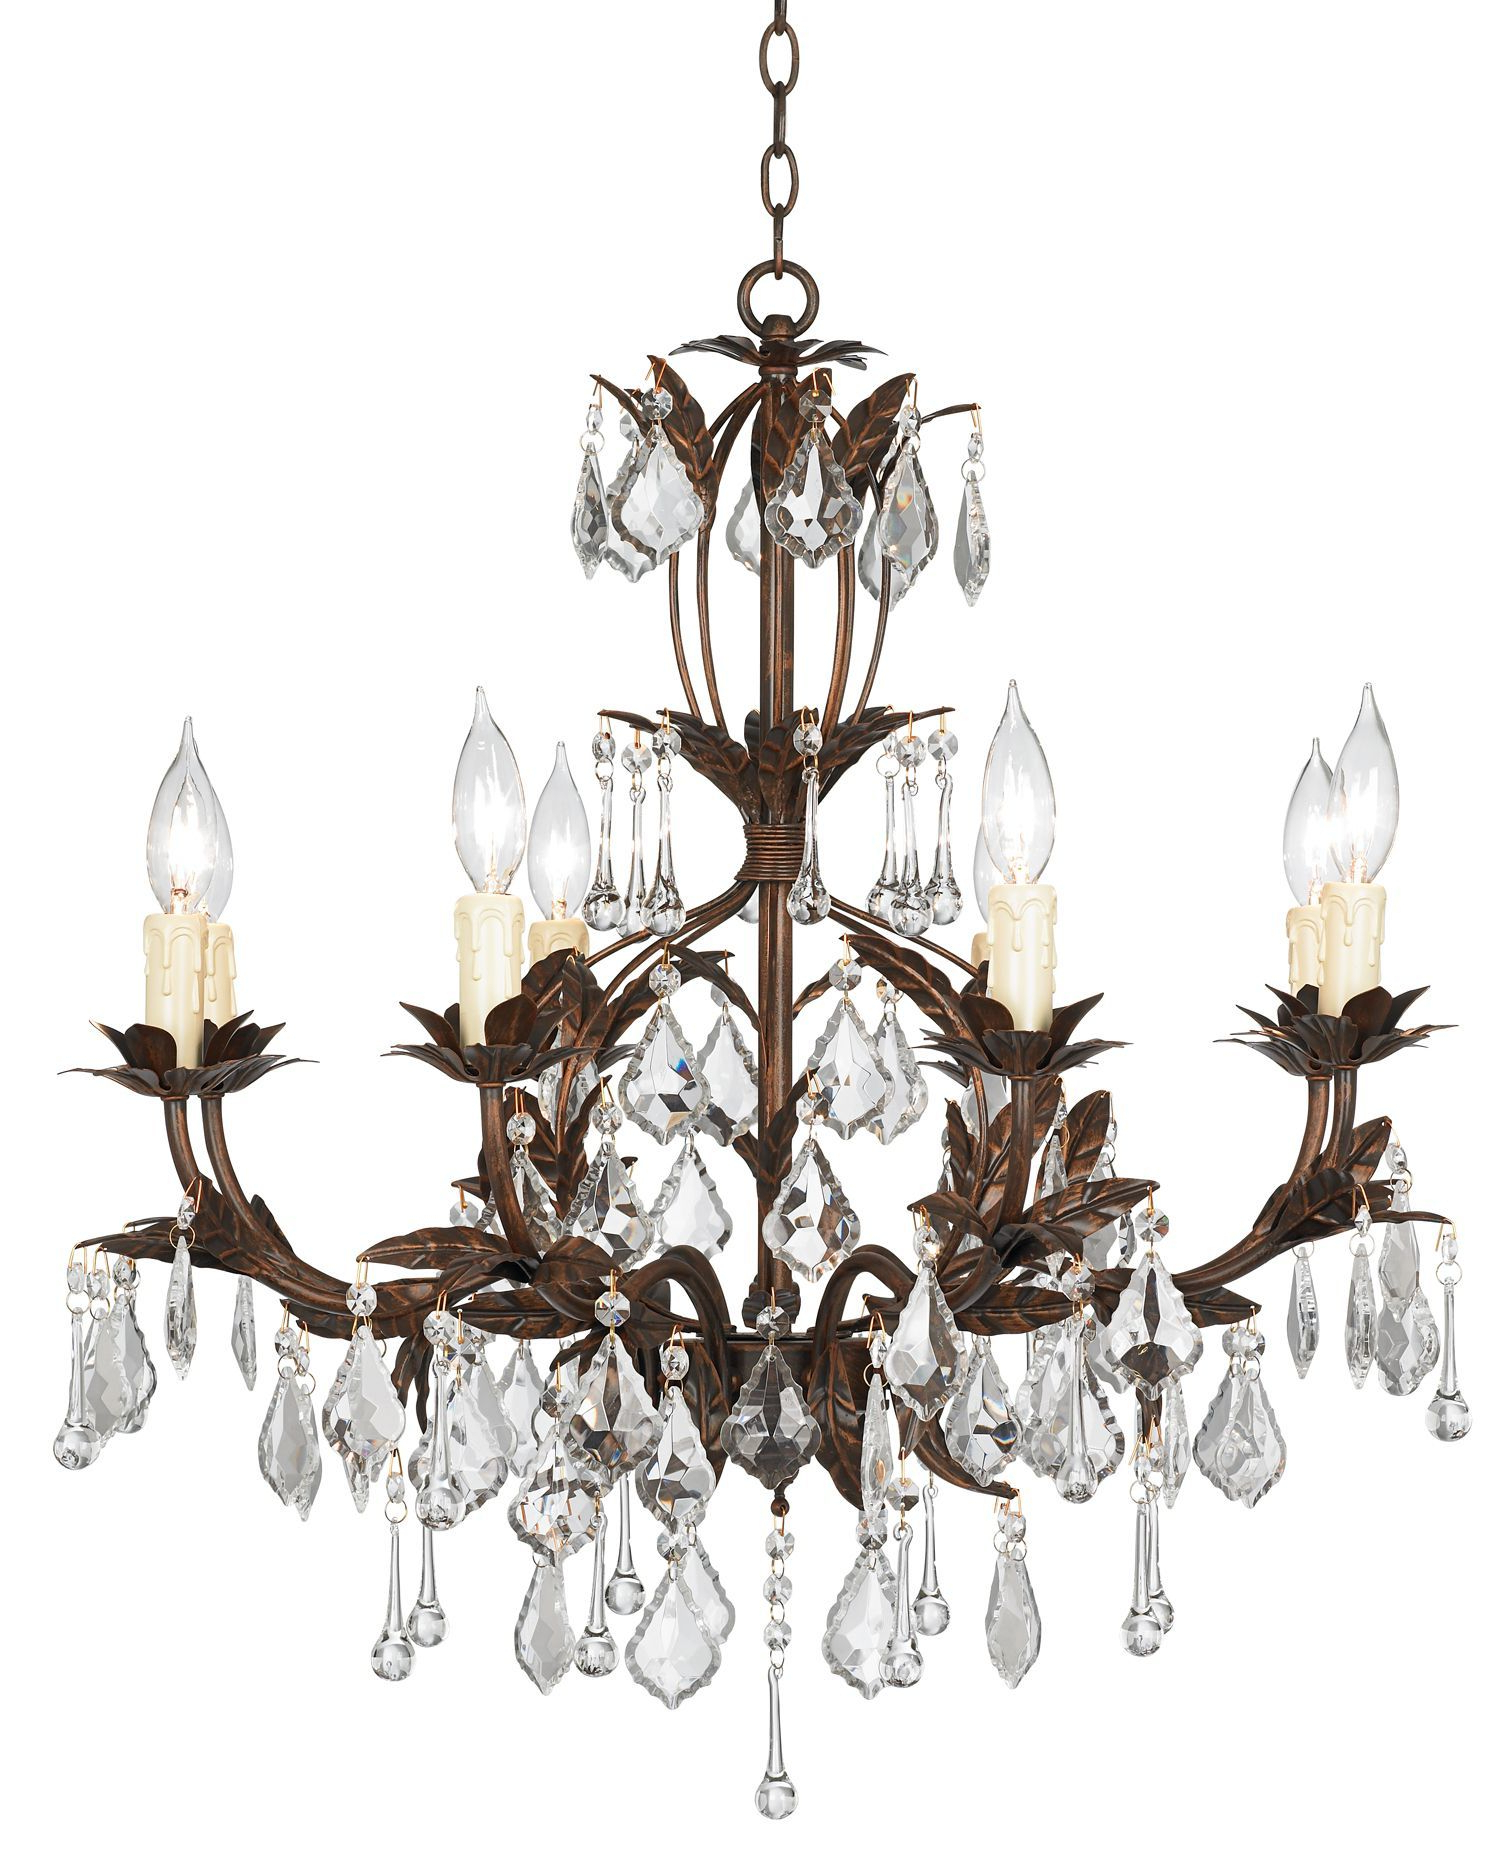 "2020 Hesse 5 Light Candle Style Chandeliers Regarding Kathy Ireland Venezia Bronze 8 Light 26"" Wide Chandelier (Gallery 17 of 20)"